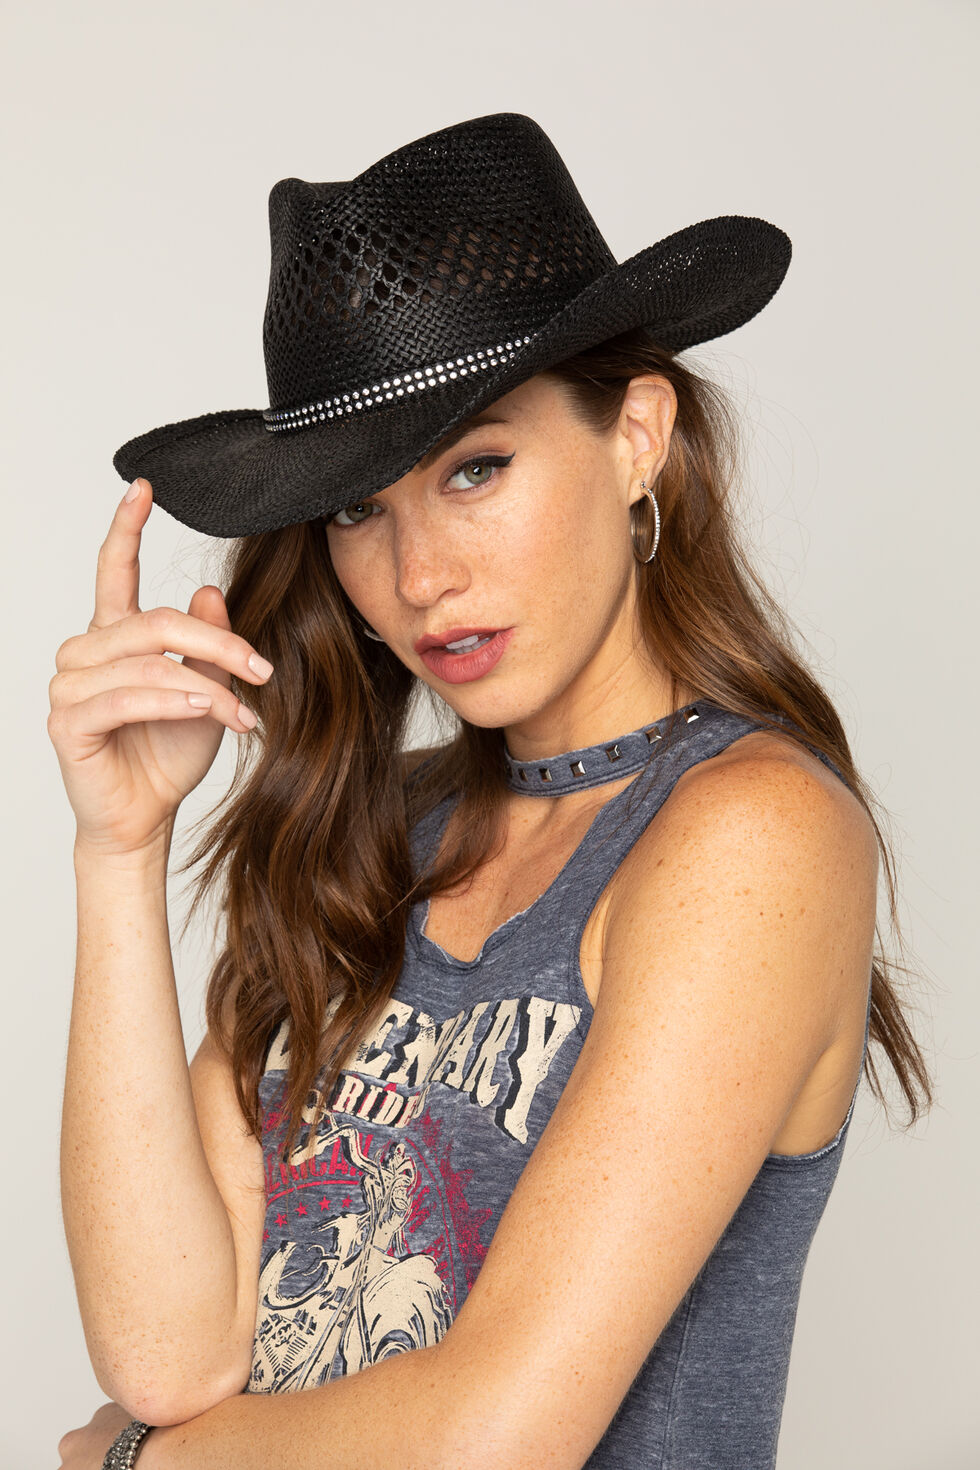 Shyanne Women's Black Bling Straw Cowgirl Hat, Black, hi-res